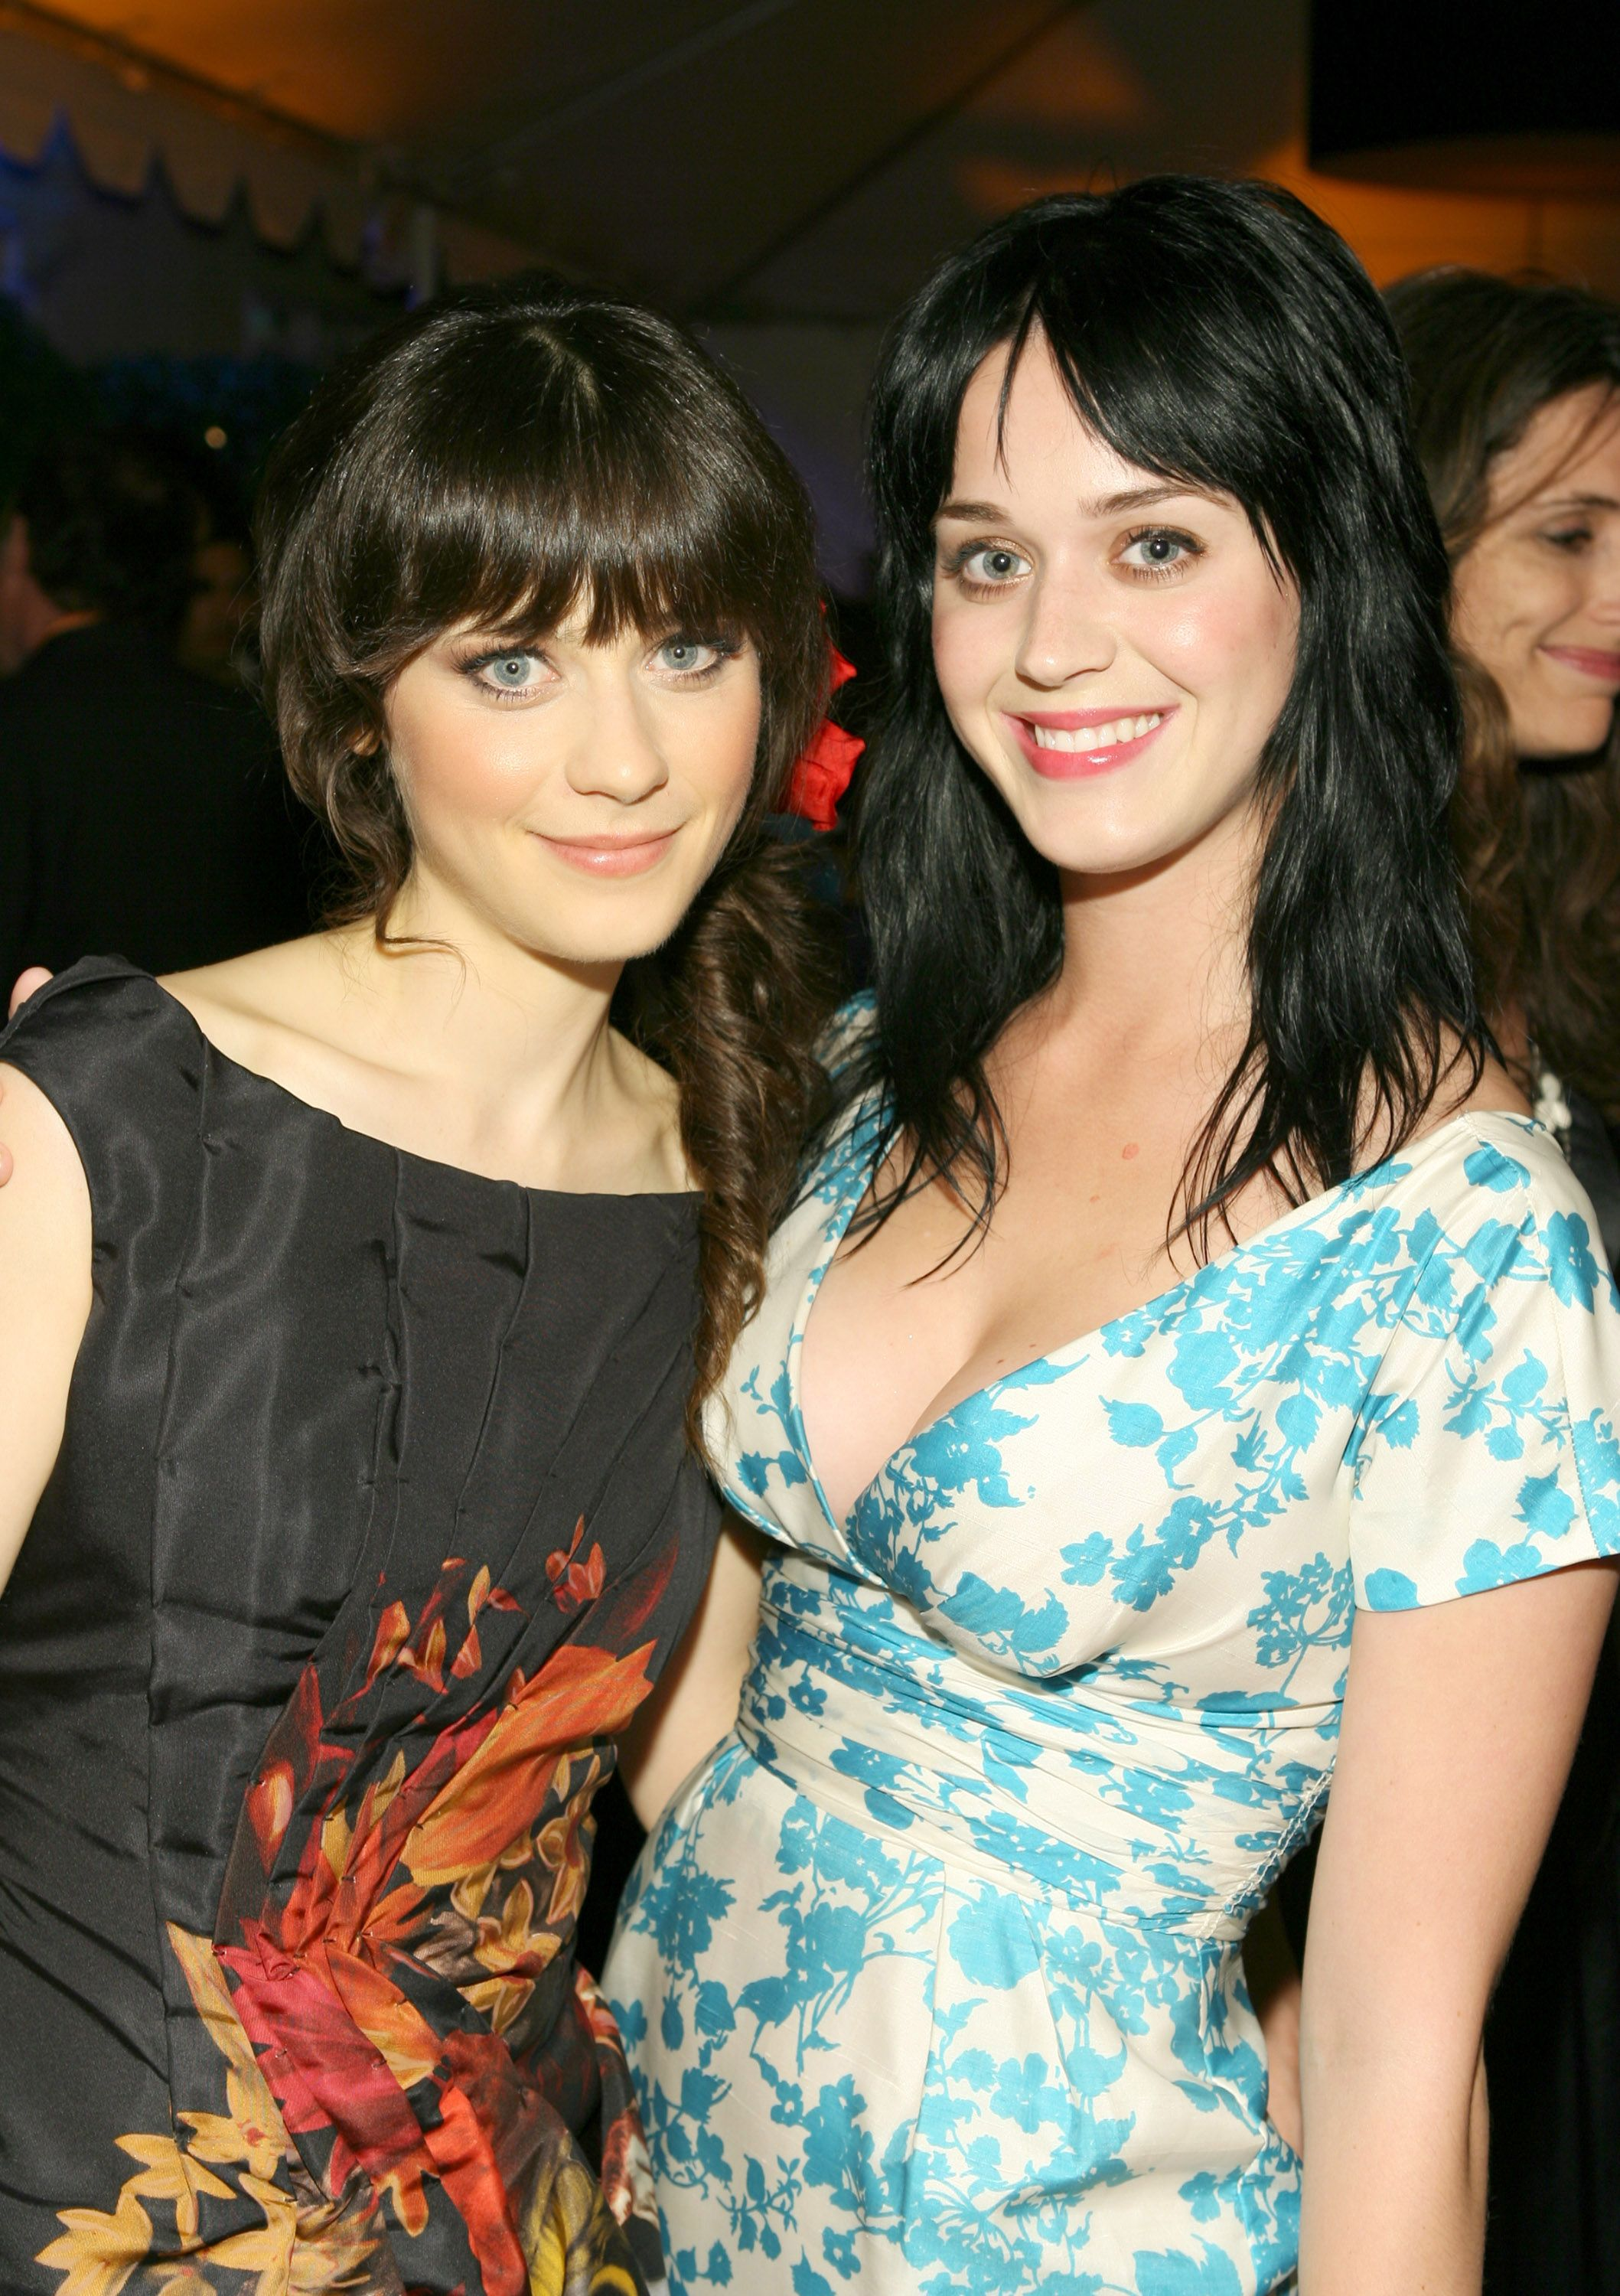 Zooey Deschanel and Katy Perry The wide-eyed stars are often confused for each other. In 2009, Deschanel admitted that the situation could be kind of annoying.